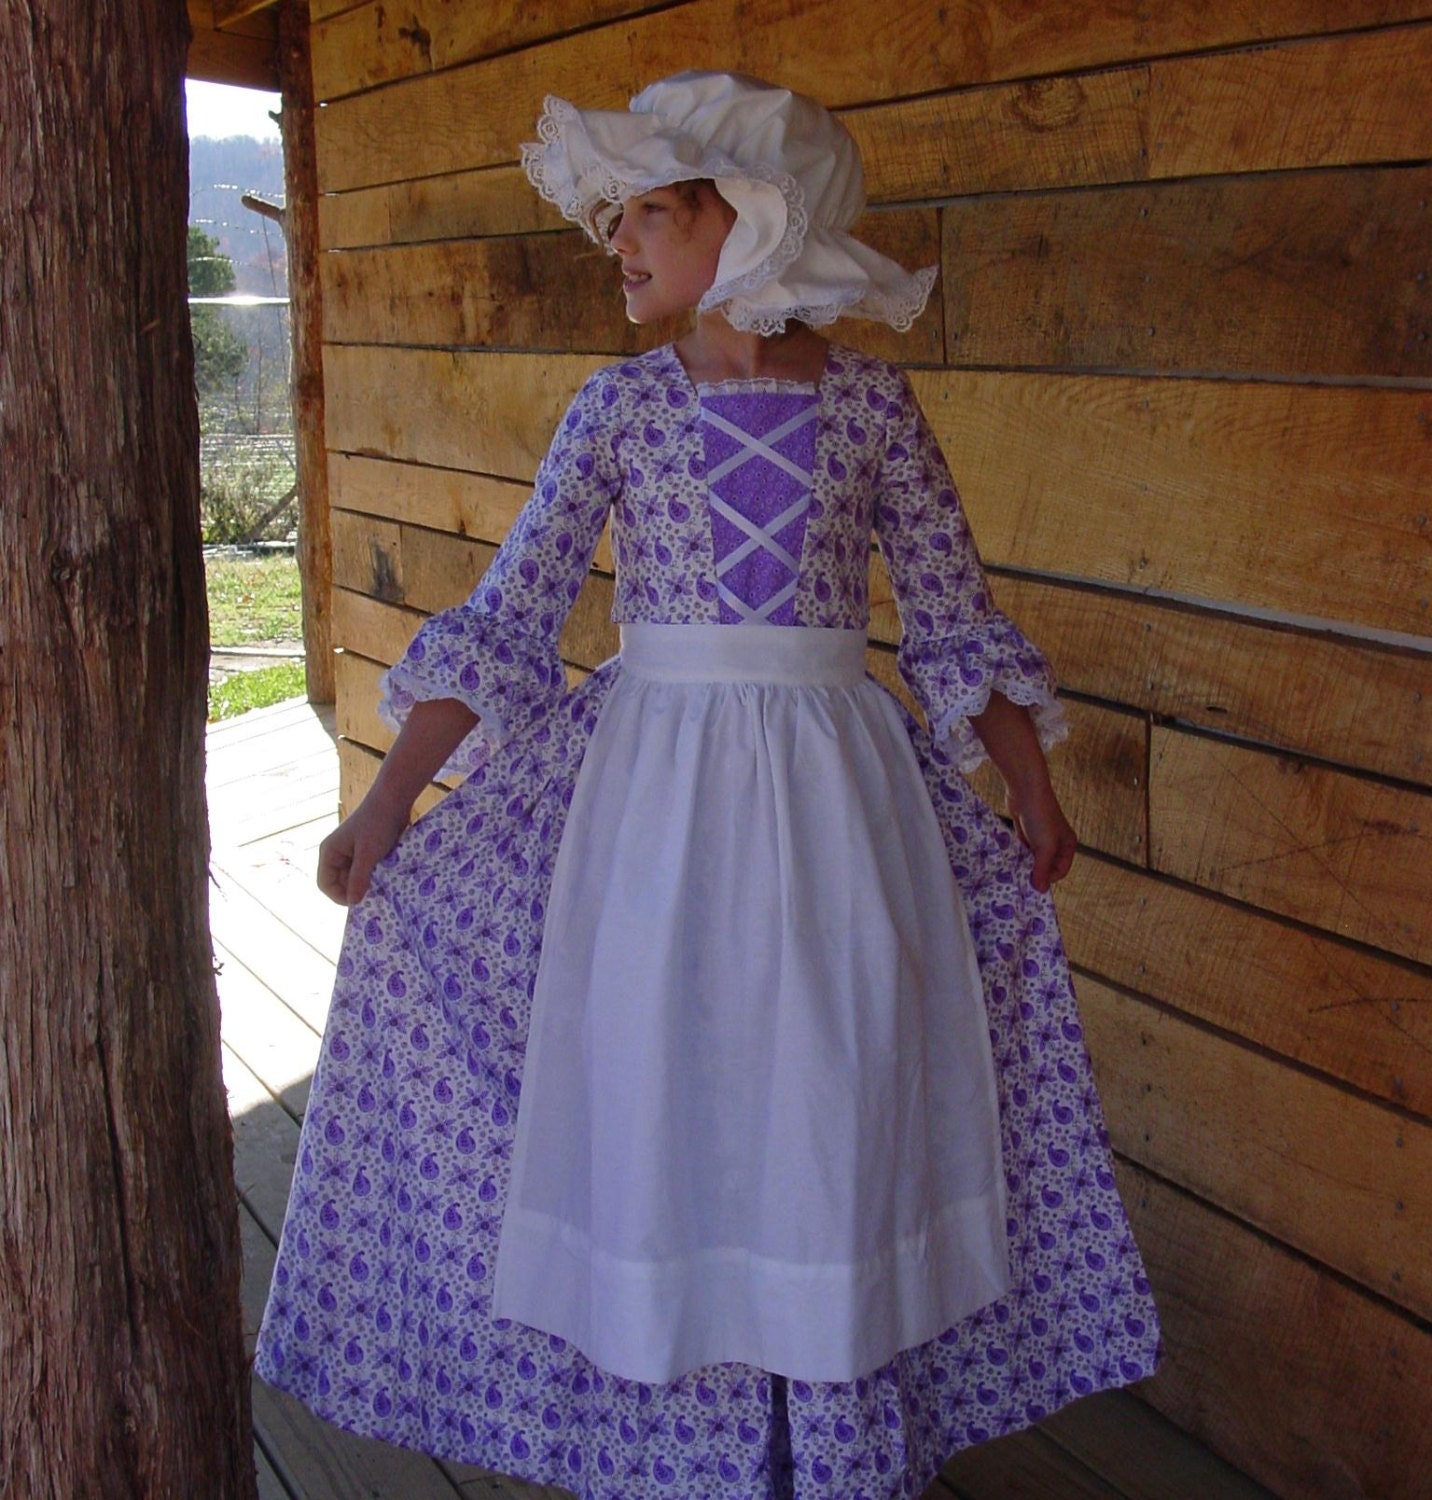 New Historical Pioneer Girl Clothing Modest Costume Colonial Day Dress